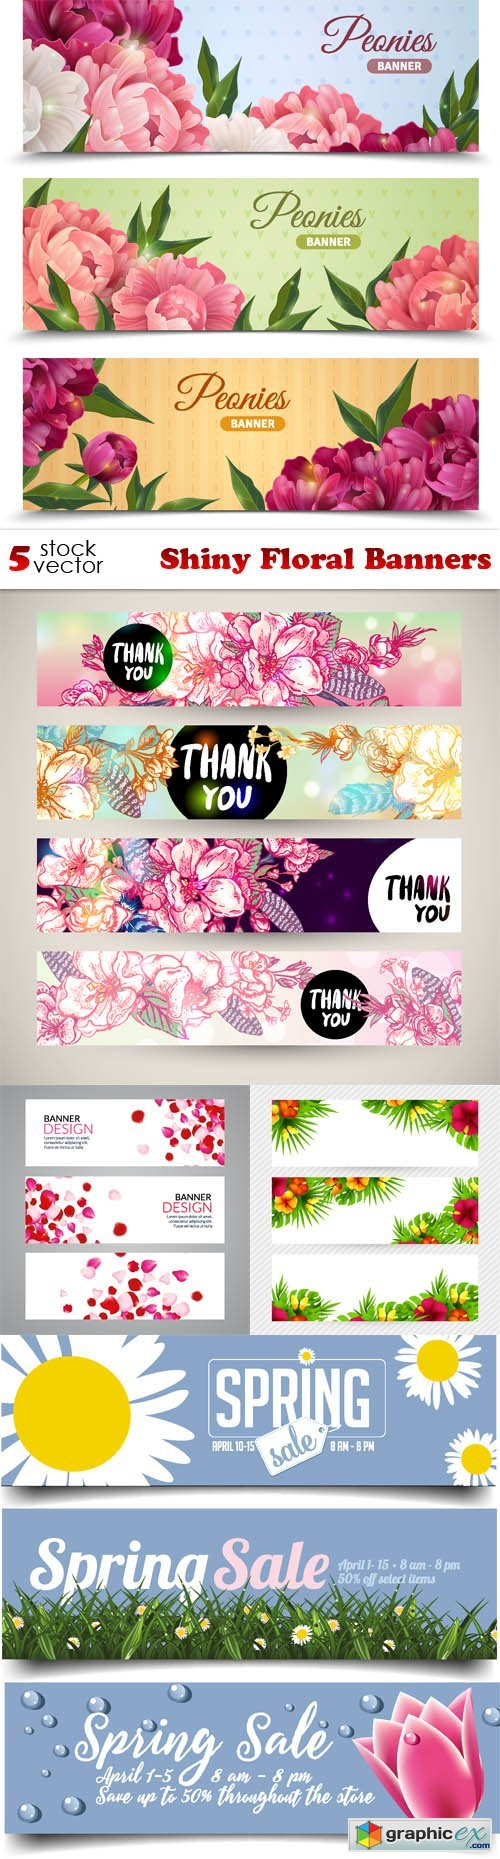 Shiny Floral Banners